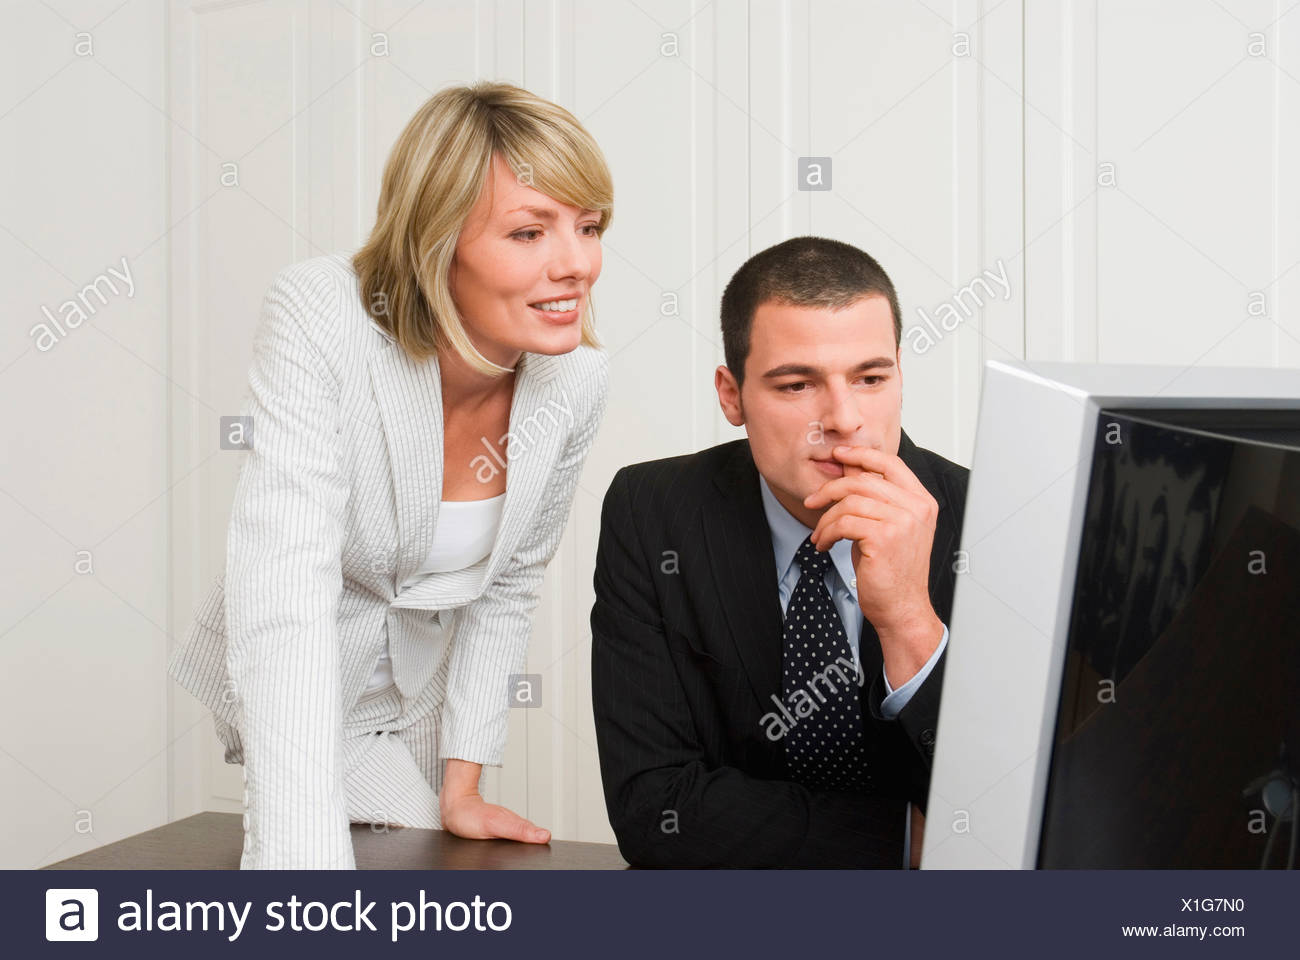 Business people looking at computer in office - Stock Image